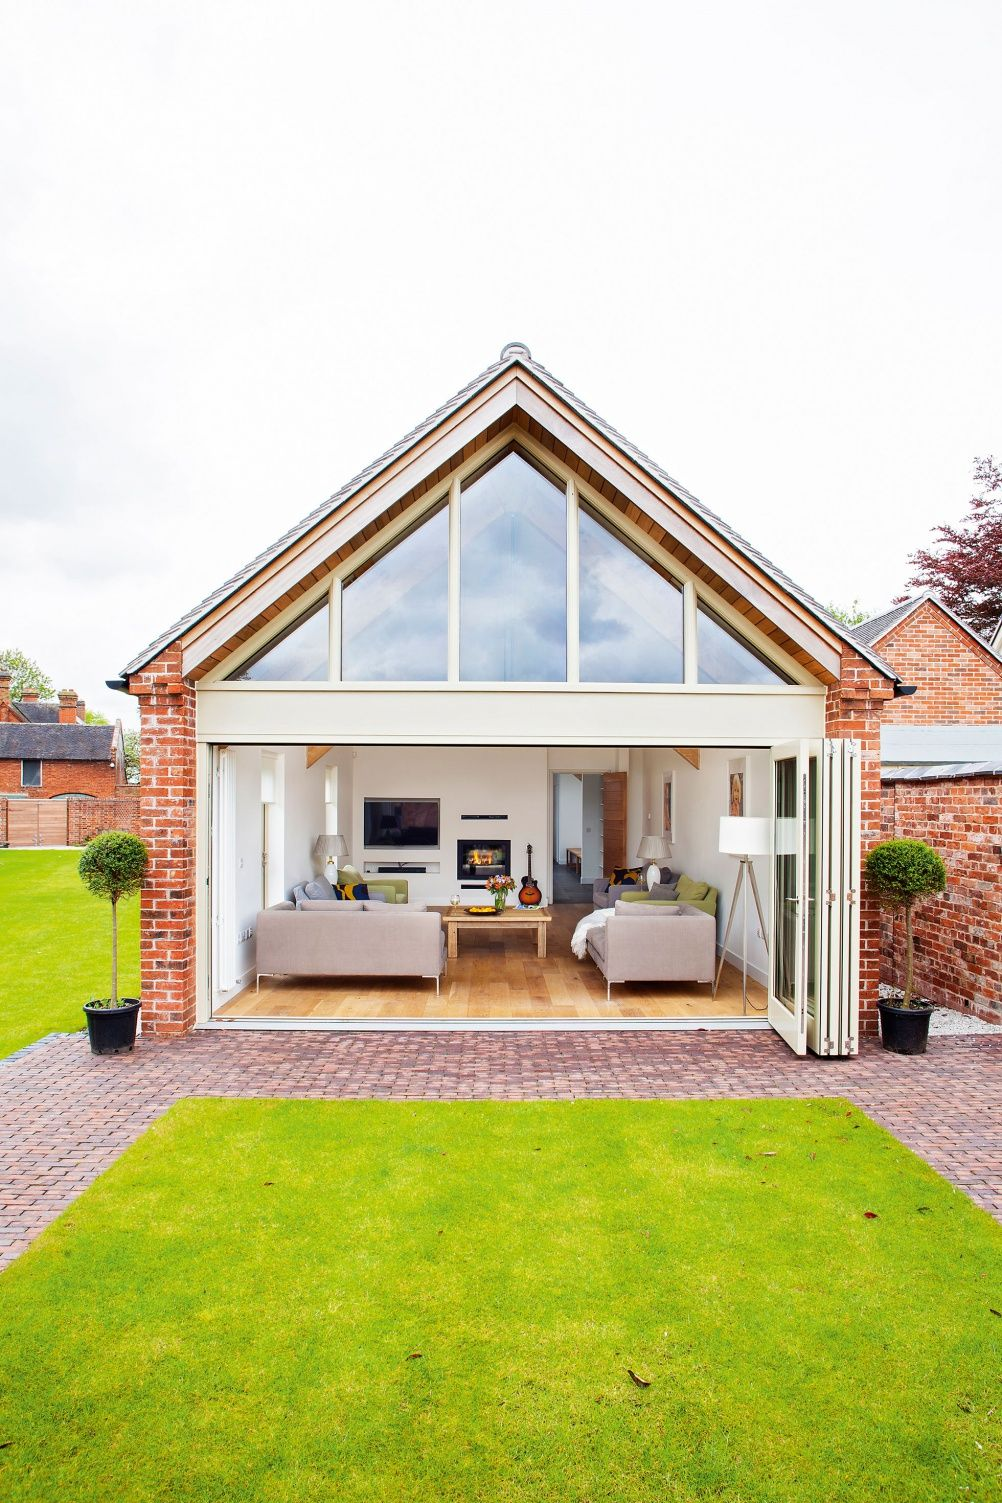 Glancy Barns Cowshed Barn House Conversion Garden Room Extensions Bungalow Renovation